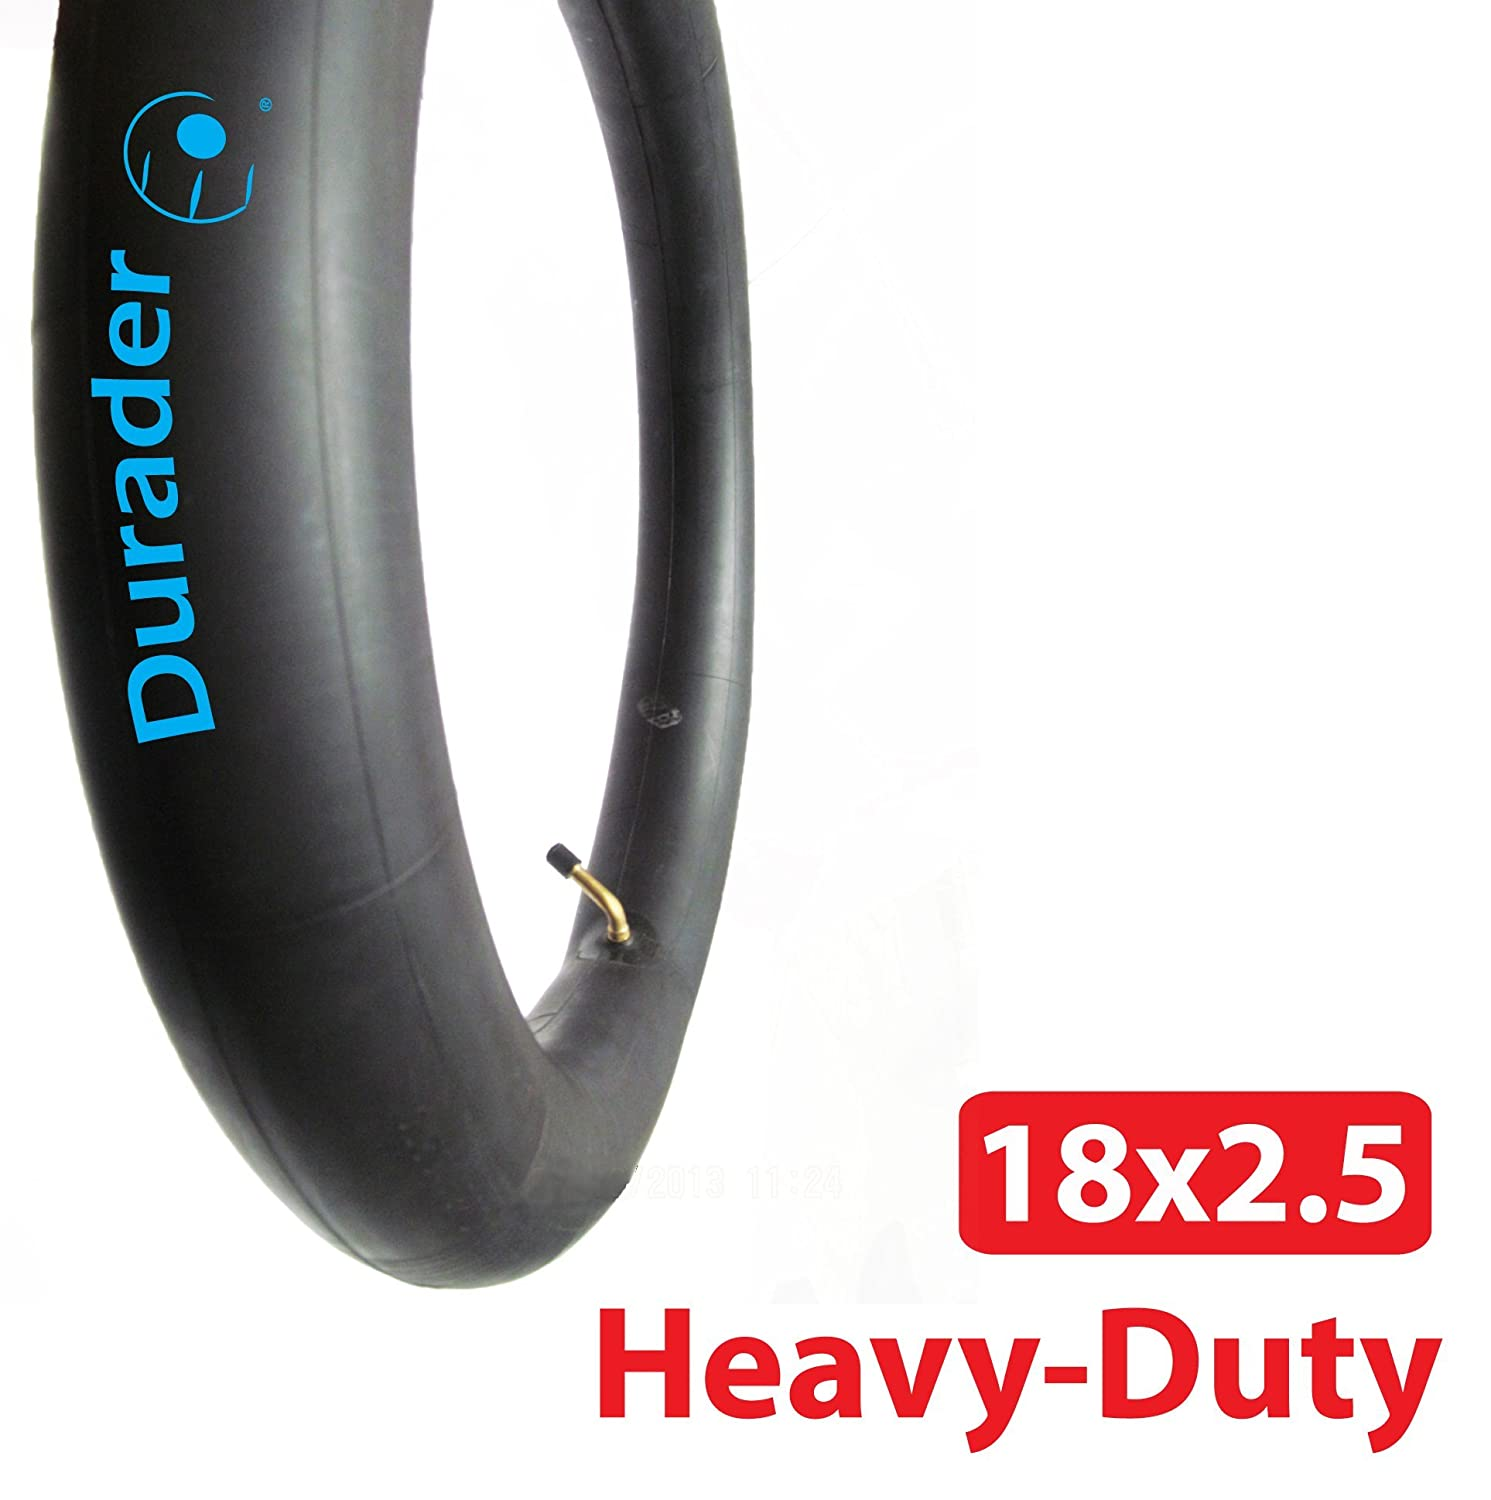 3bcf061096c Amazon.com  18x2.5 Inner Tube with Angled Valve for Electric Bikes  Sports    Outdoors